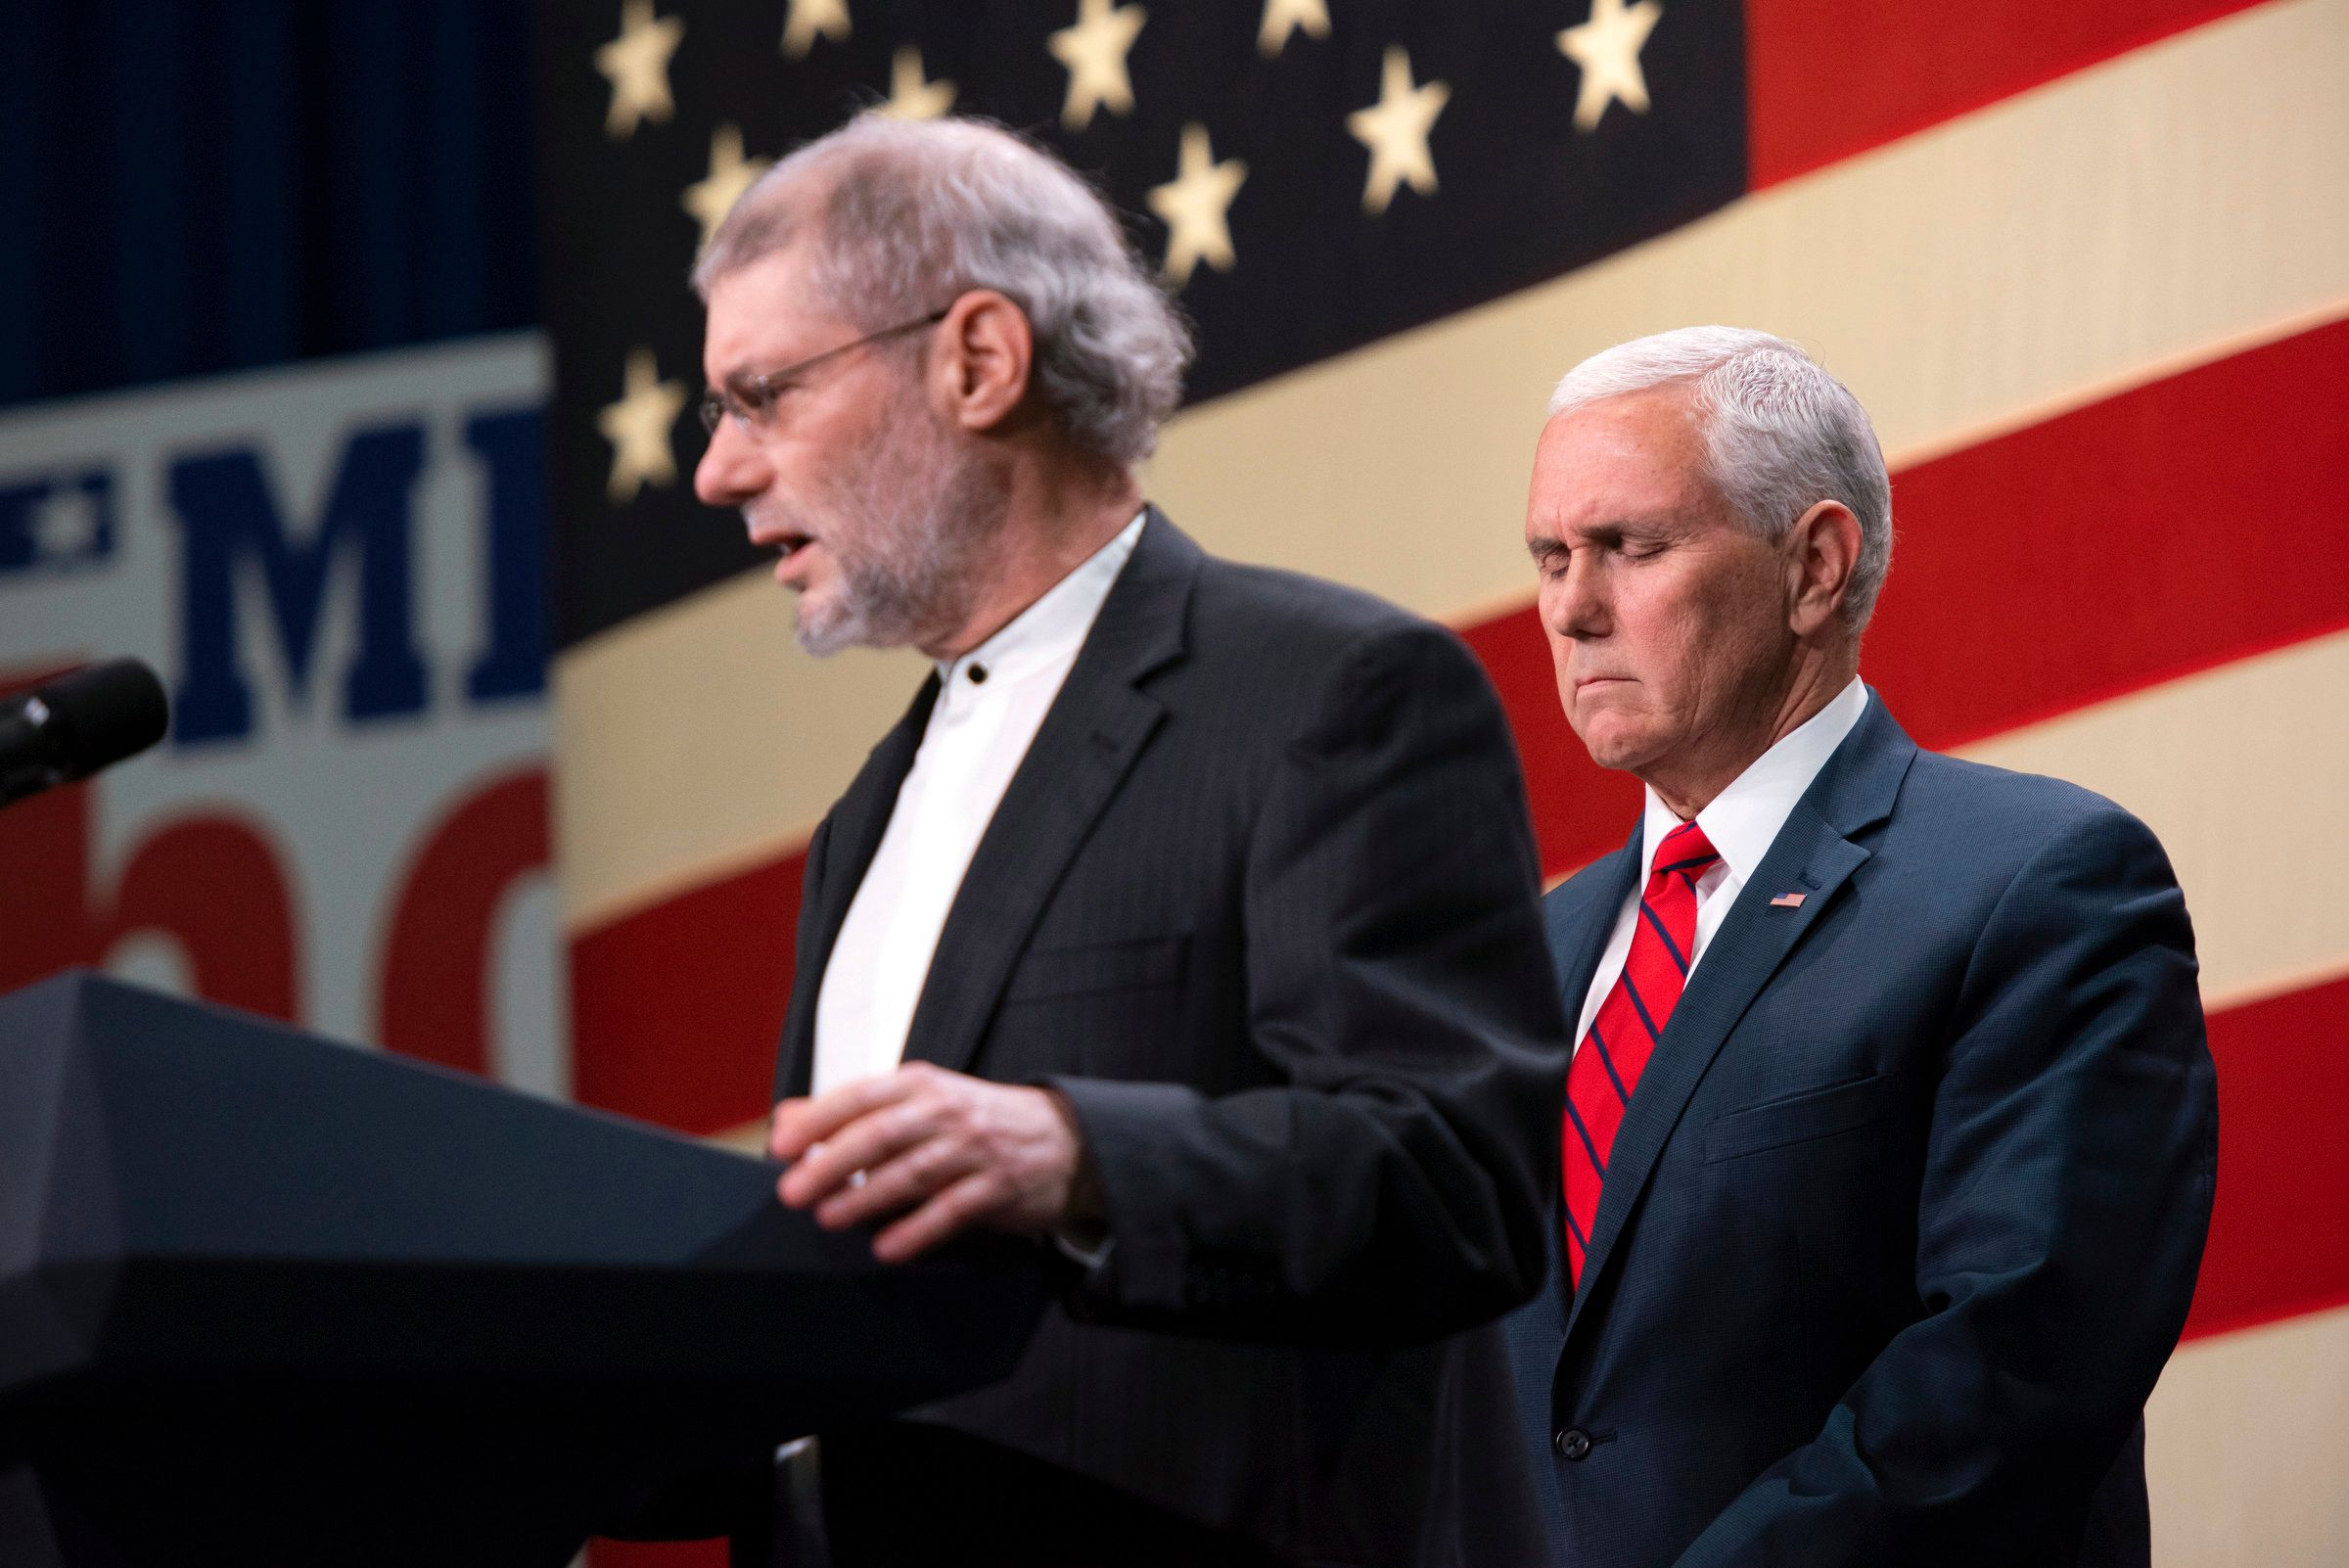 Messianic rabbi Loren Jacobs with Vice President Mike Pence.